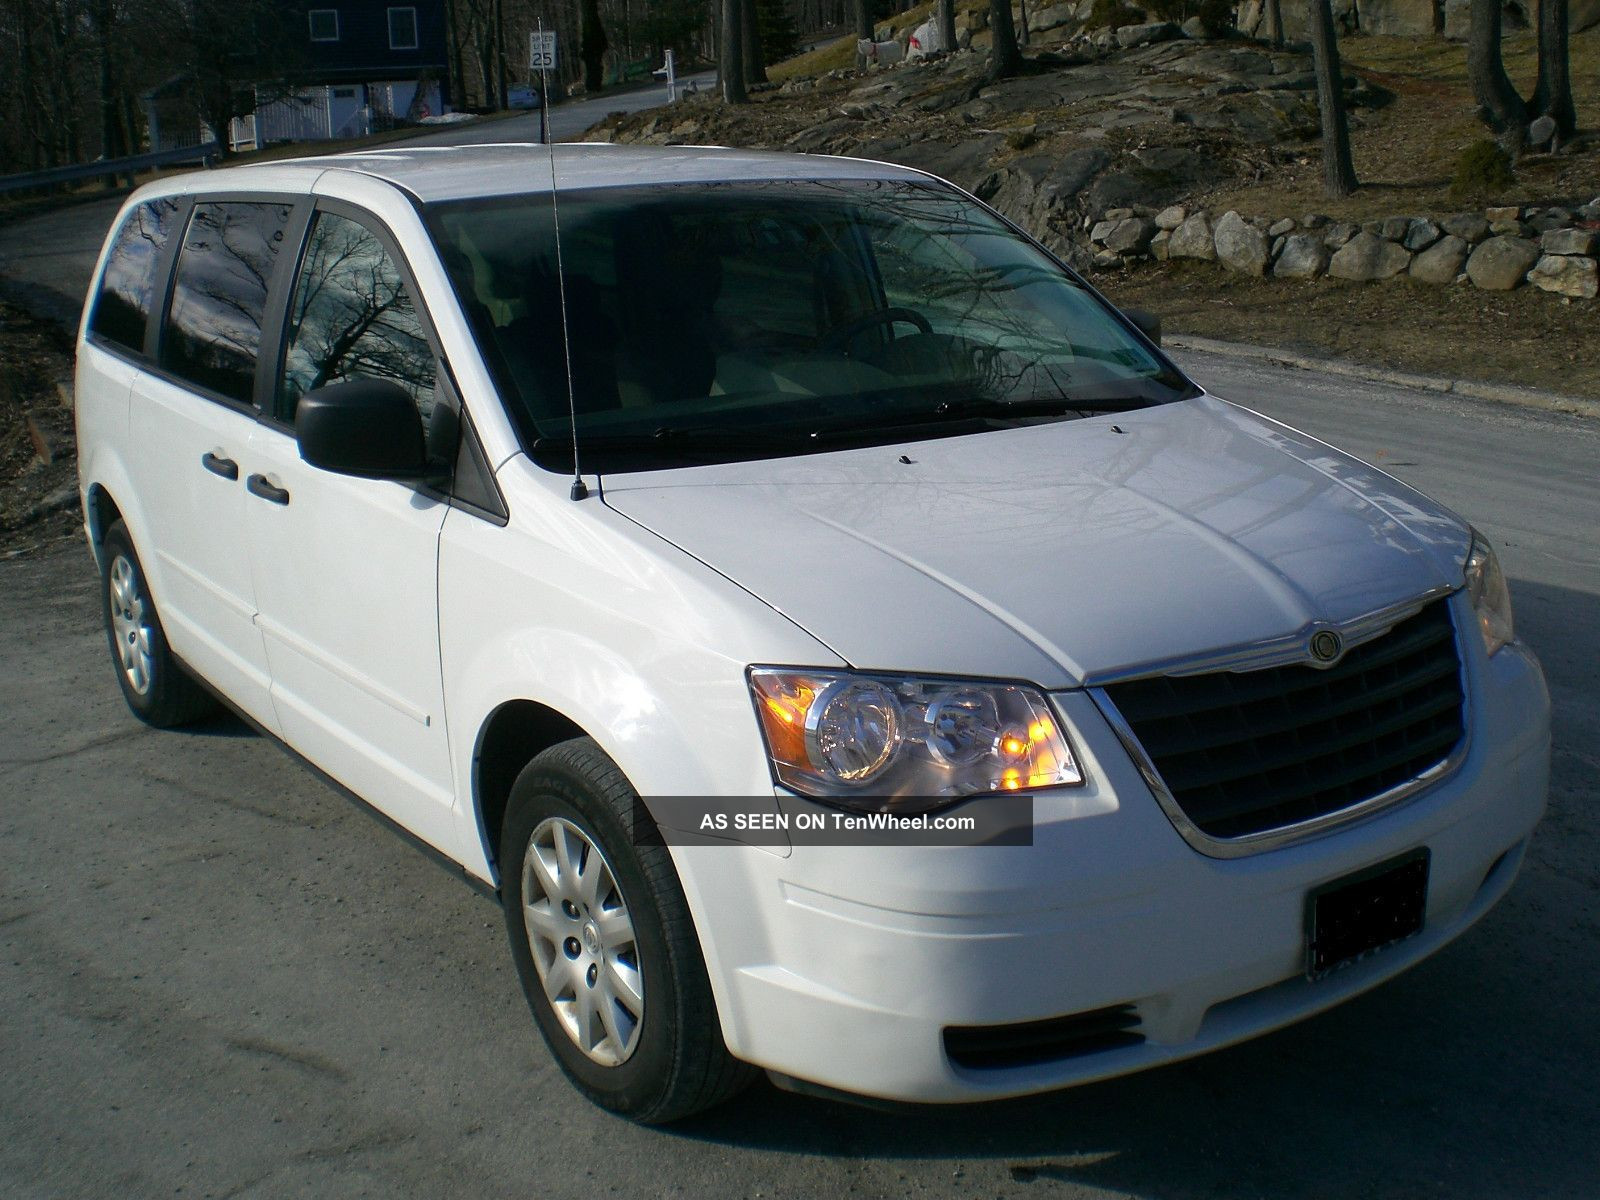 2008 chrysler town country lx 60k 3 3l 6cyl. Black Bedroom Furniture Sets. Home Design Ideas